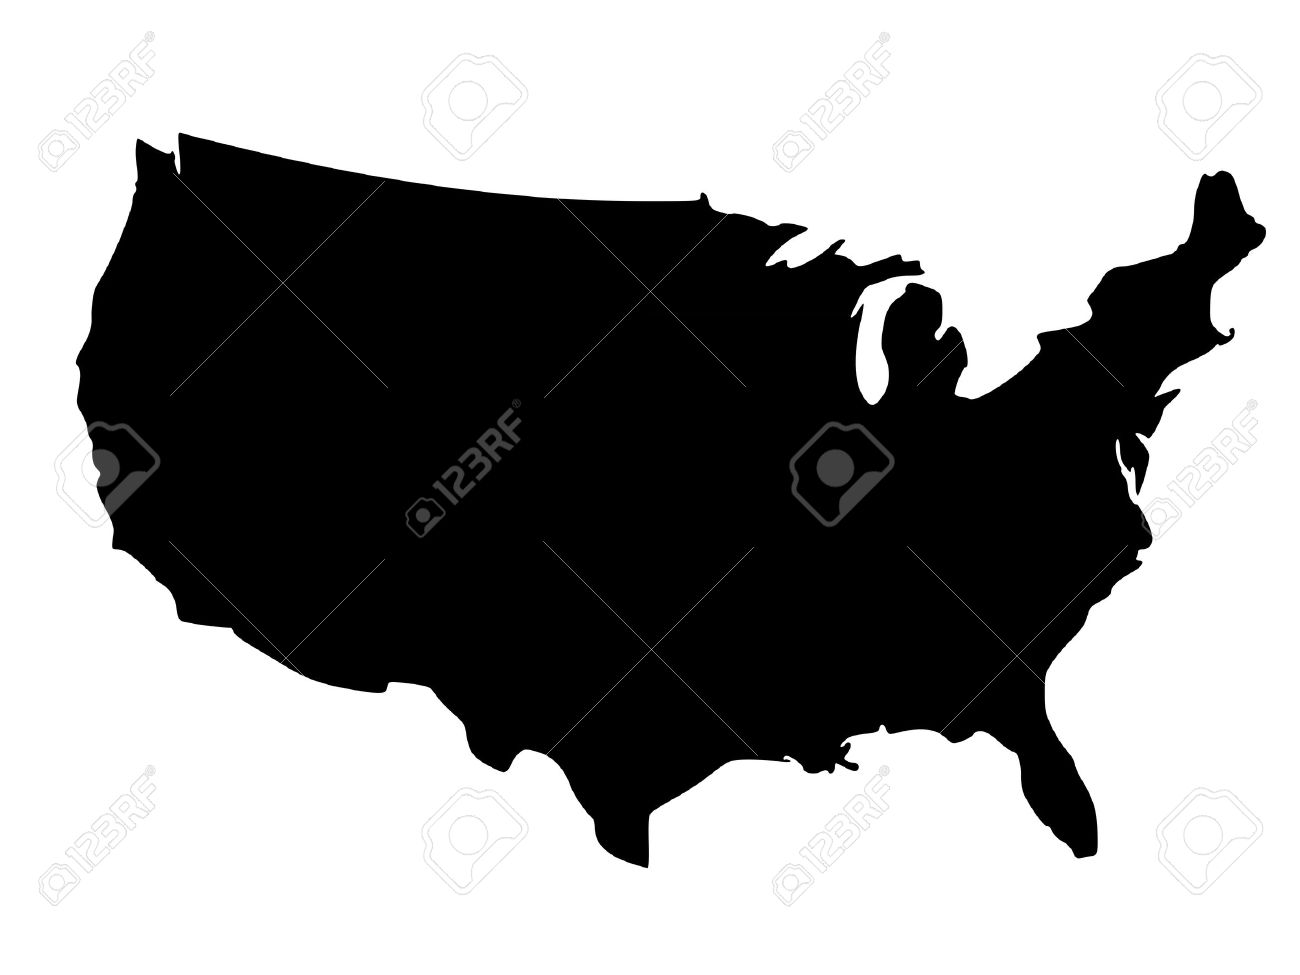 Solid Black Silhouette Map Of United States Of America Without